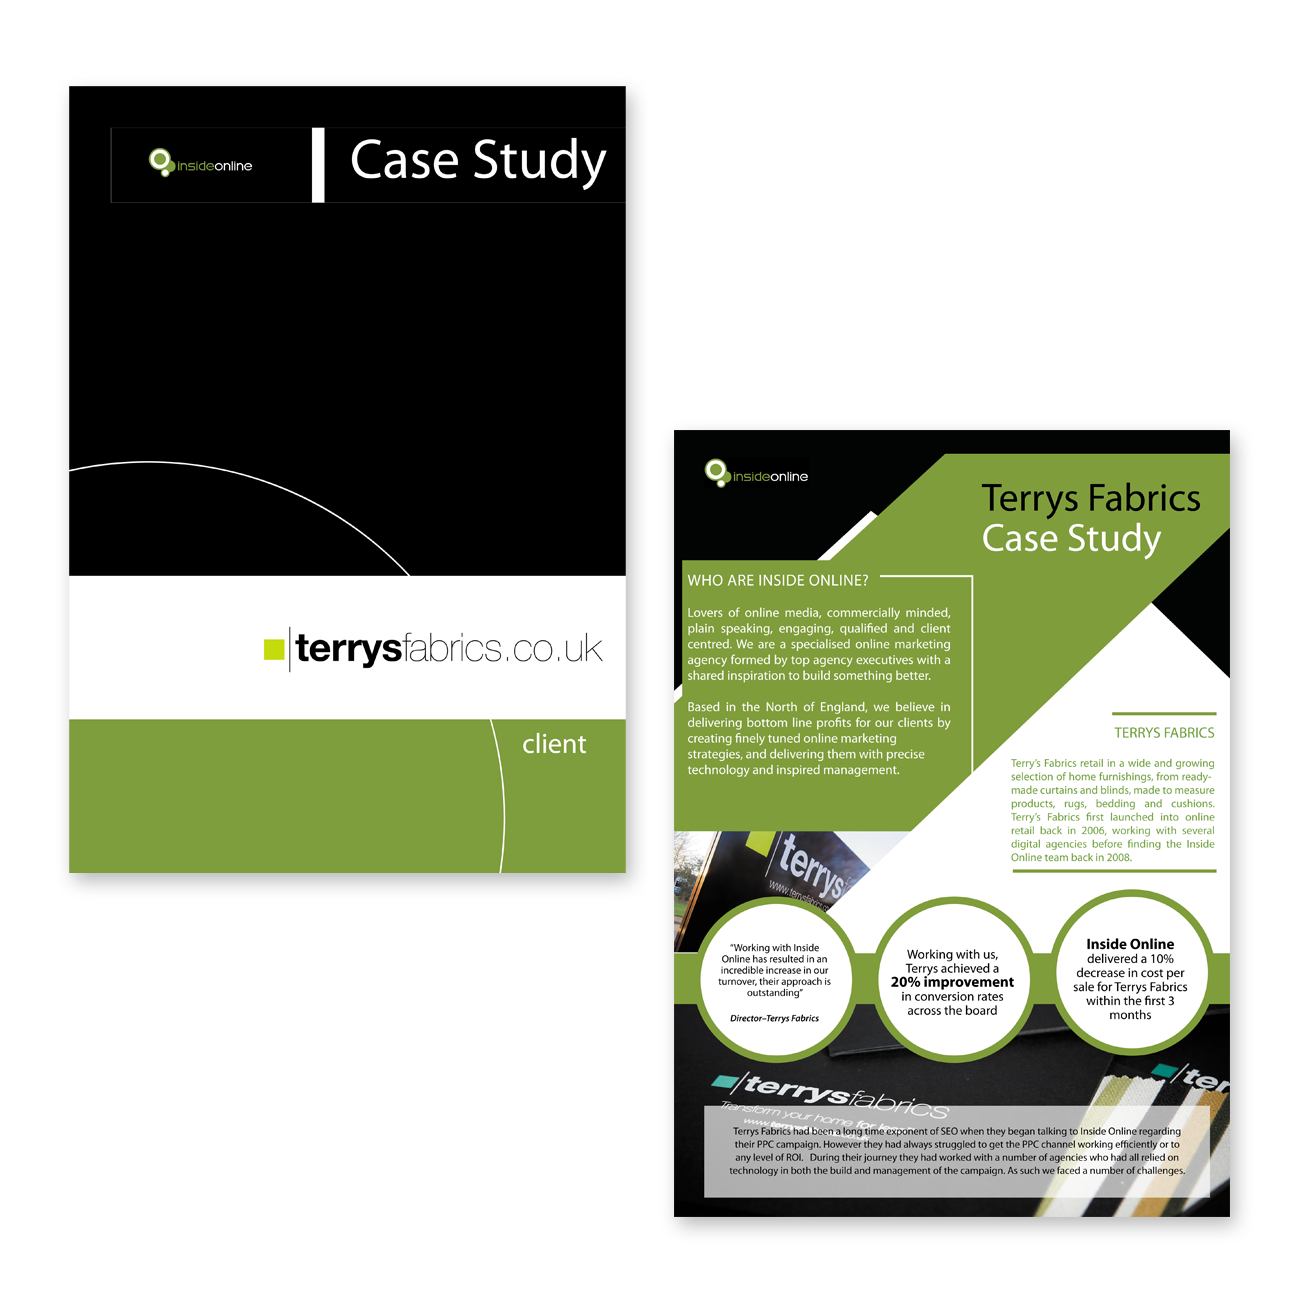 email marketing agency case study